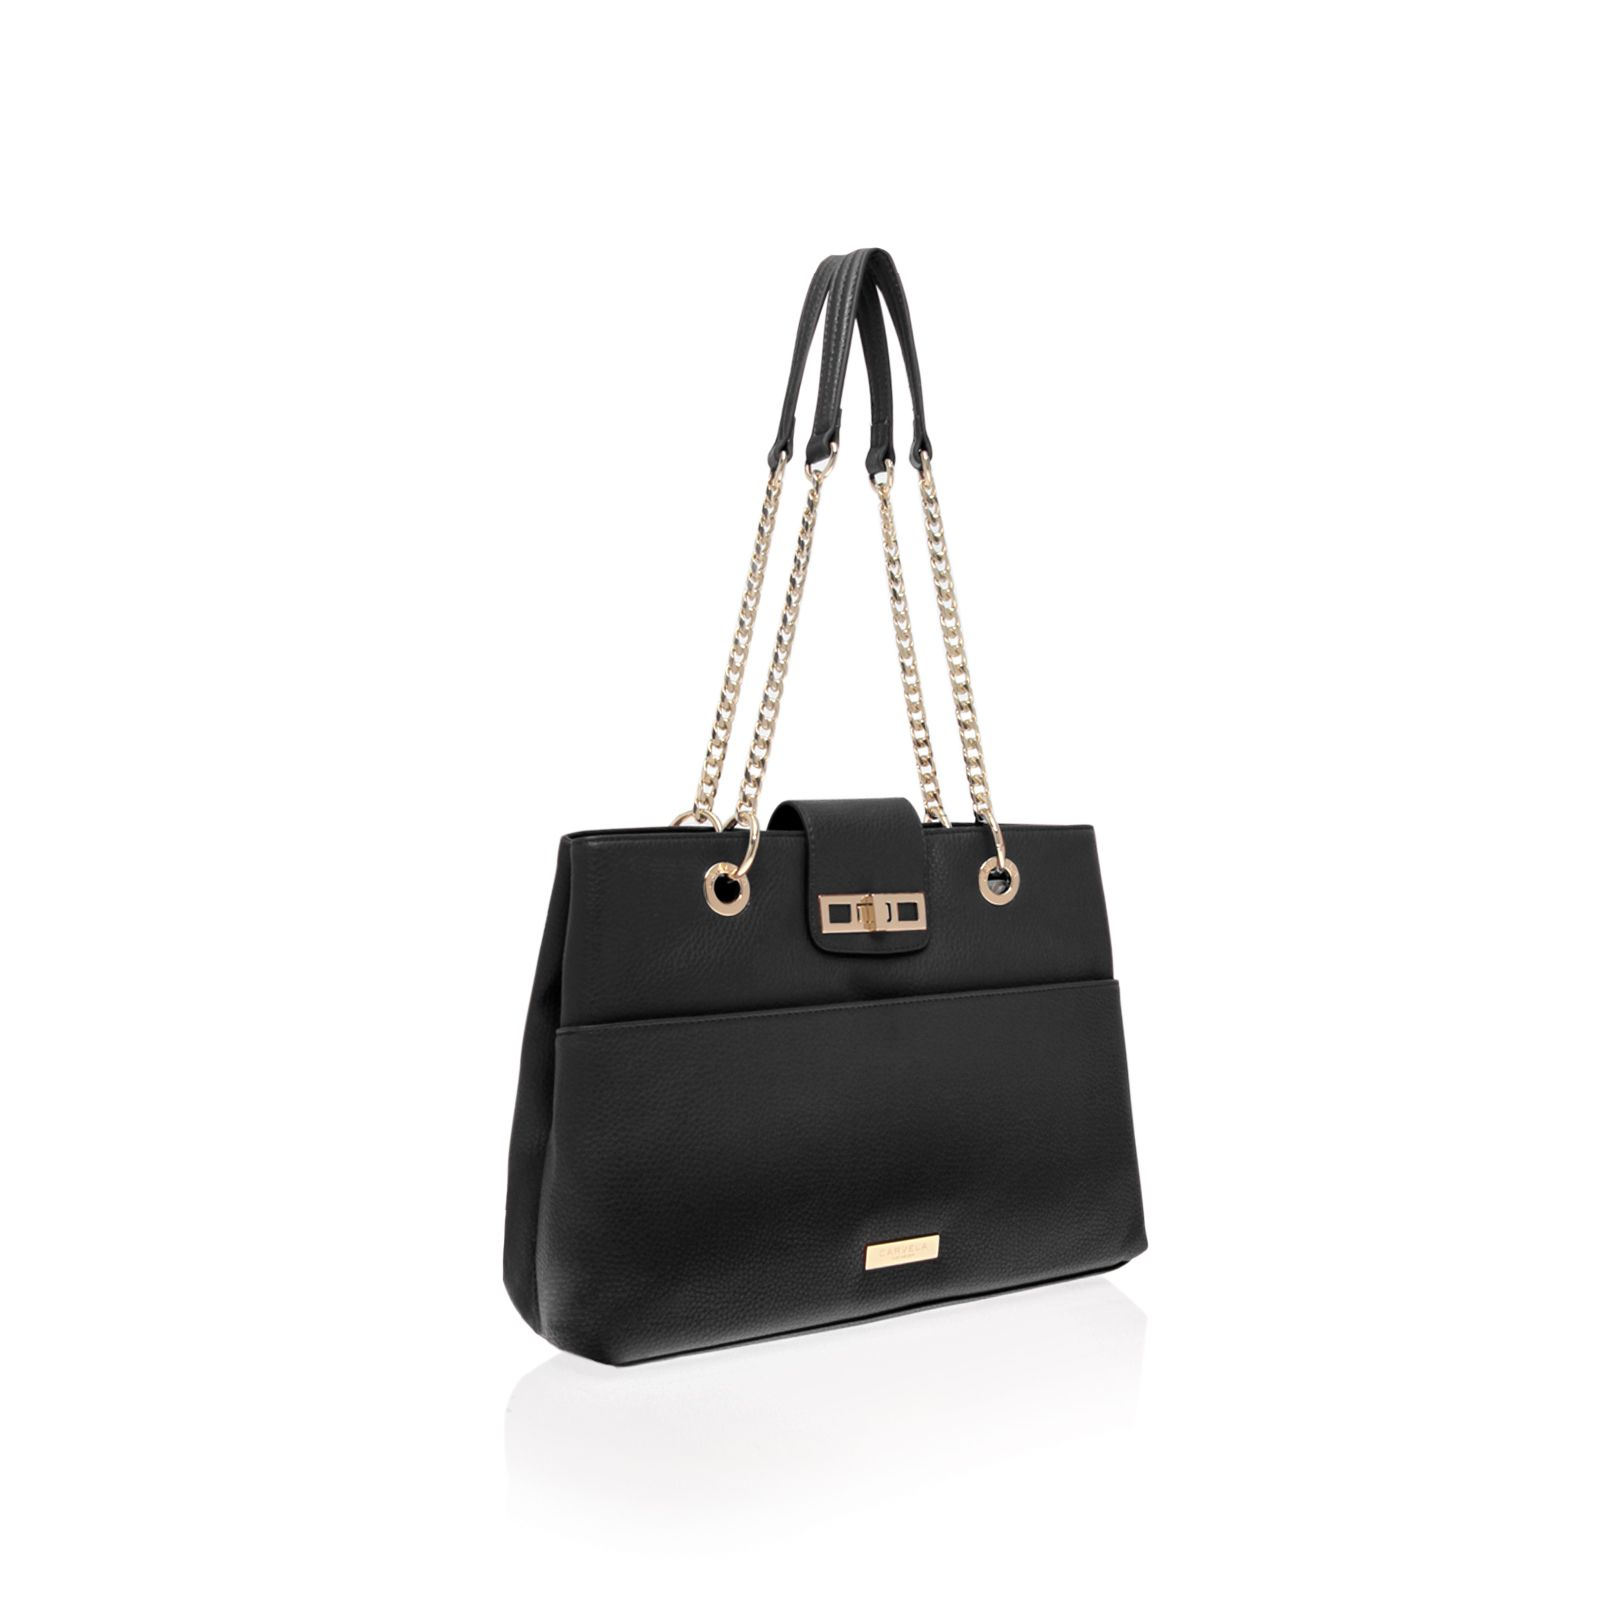 Collette chain bag